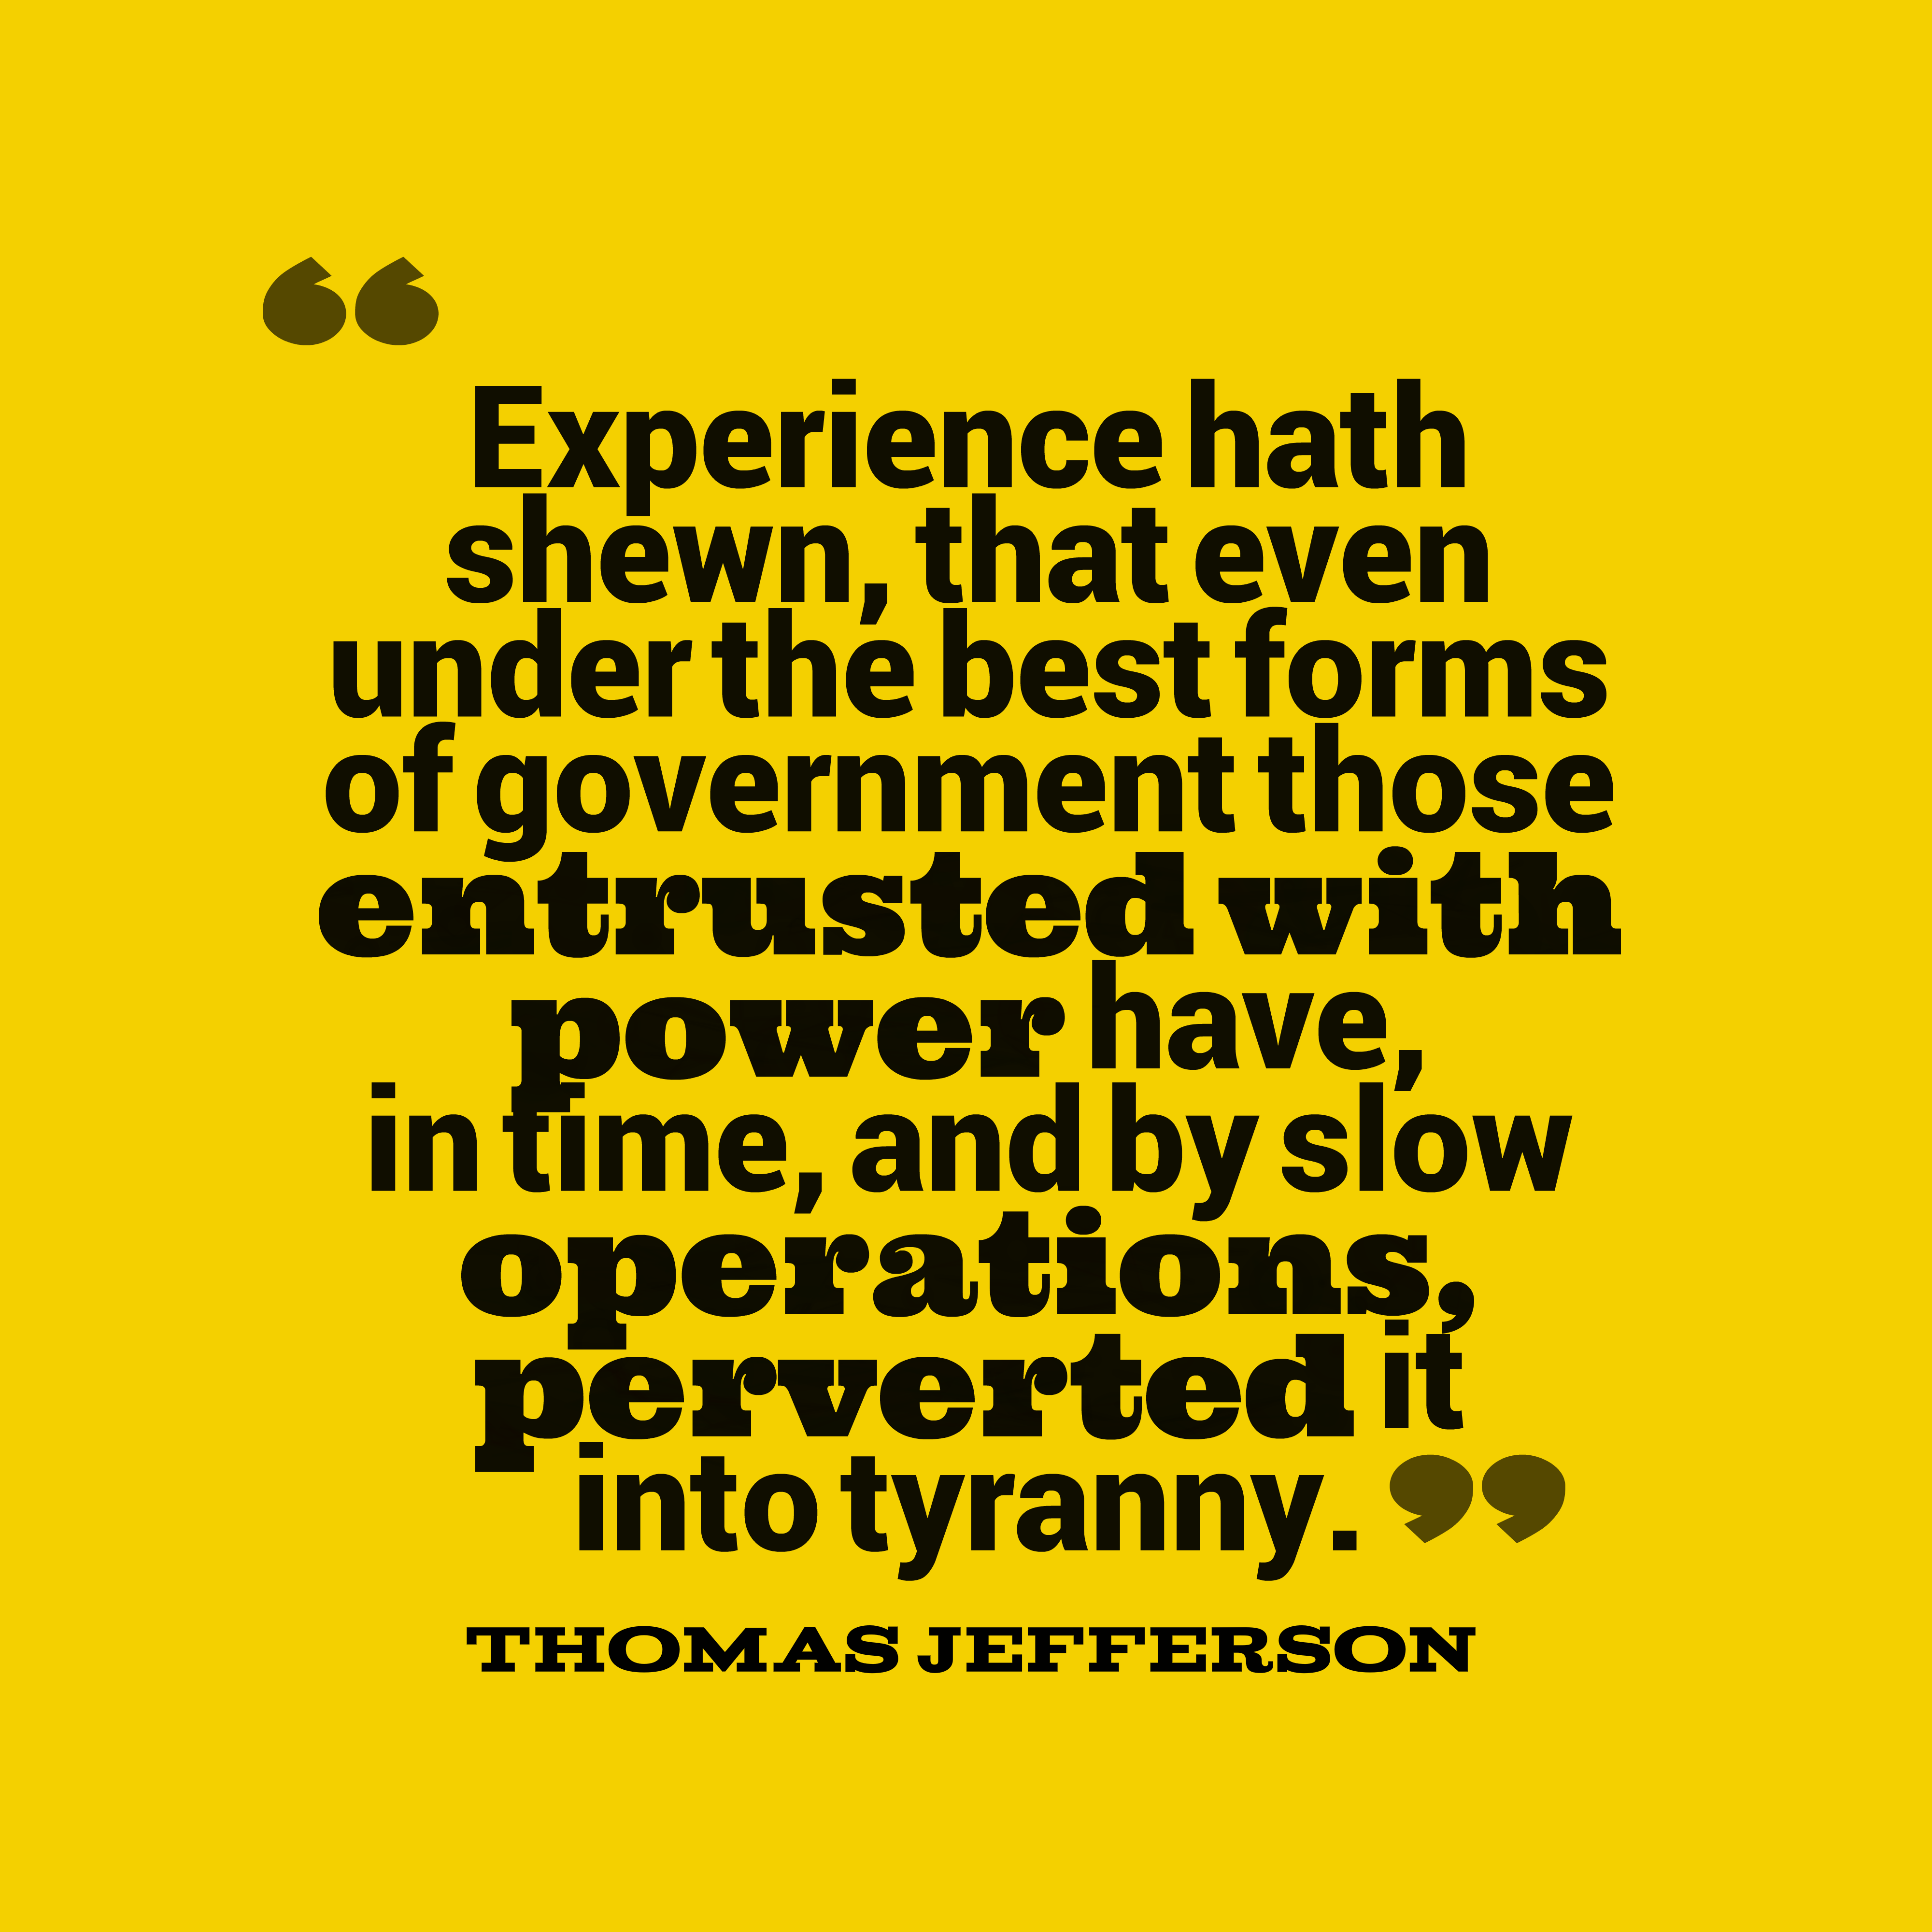 Quotes image of Experience hath shewn, that even under the best forms of government those entrusted with power have, in time, and by slow operations, perverted it into tyranny.